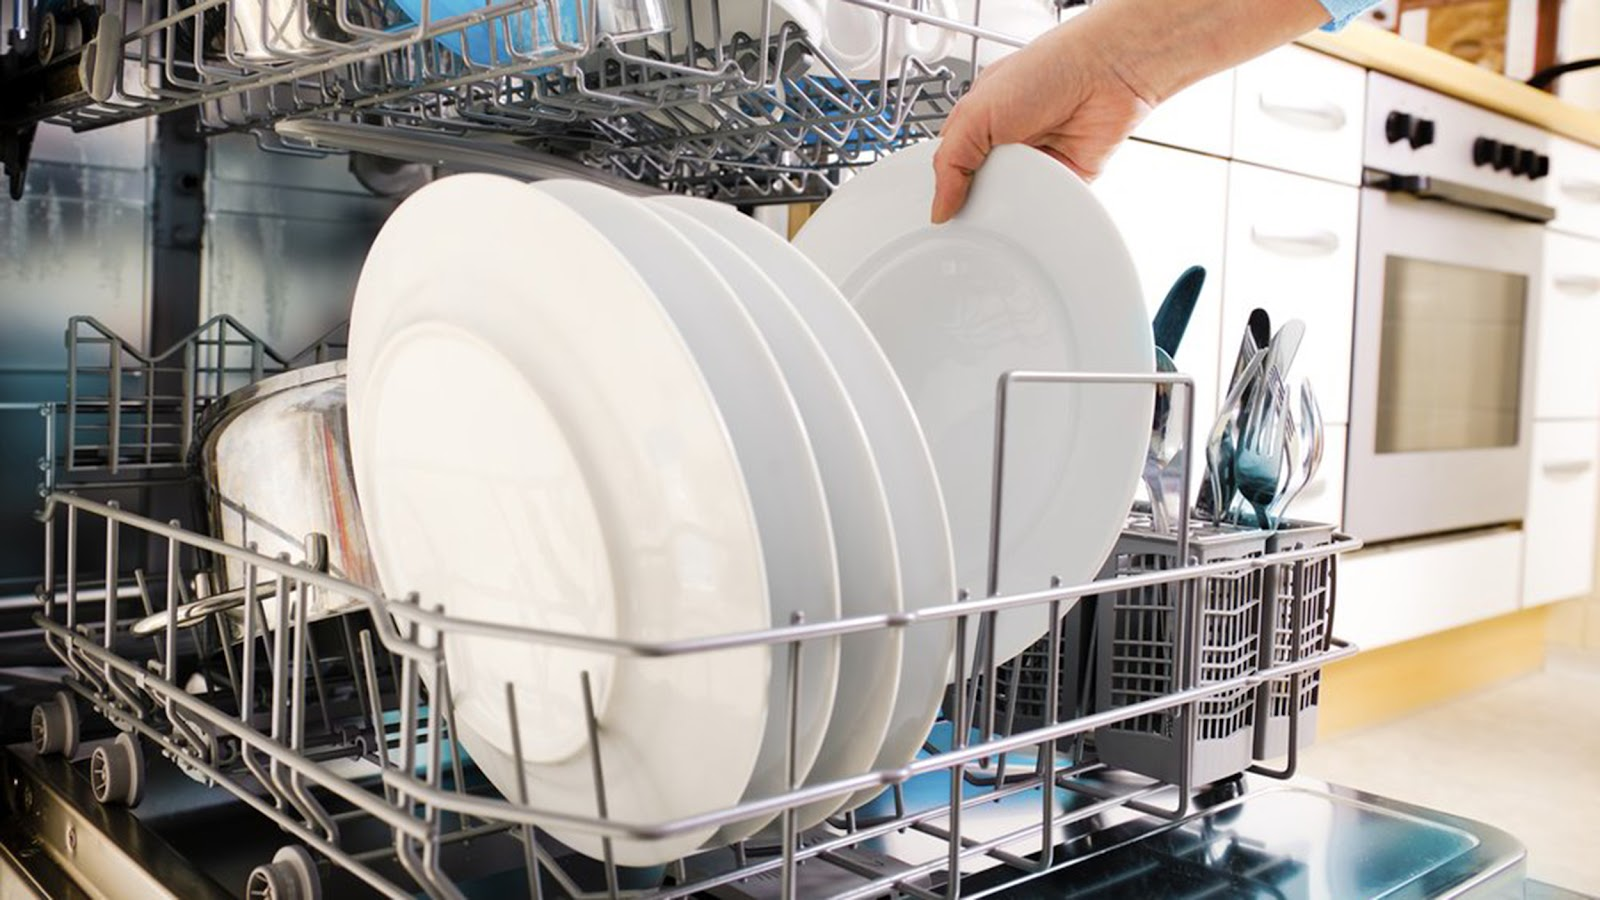 A Homeowner Using an Energy Efficient Dishwasher